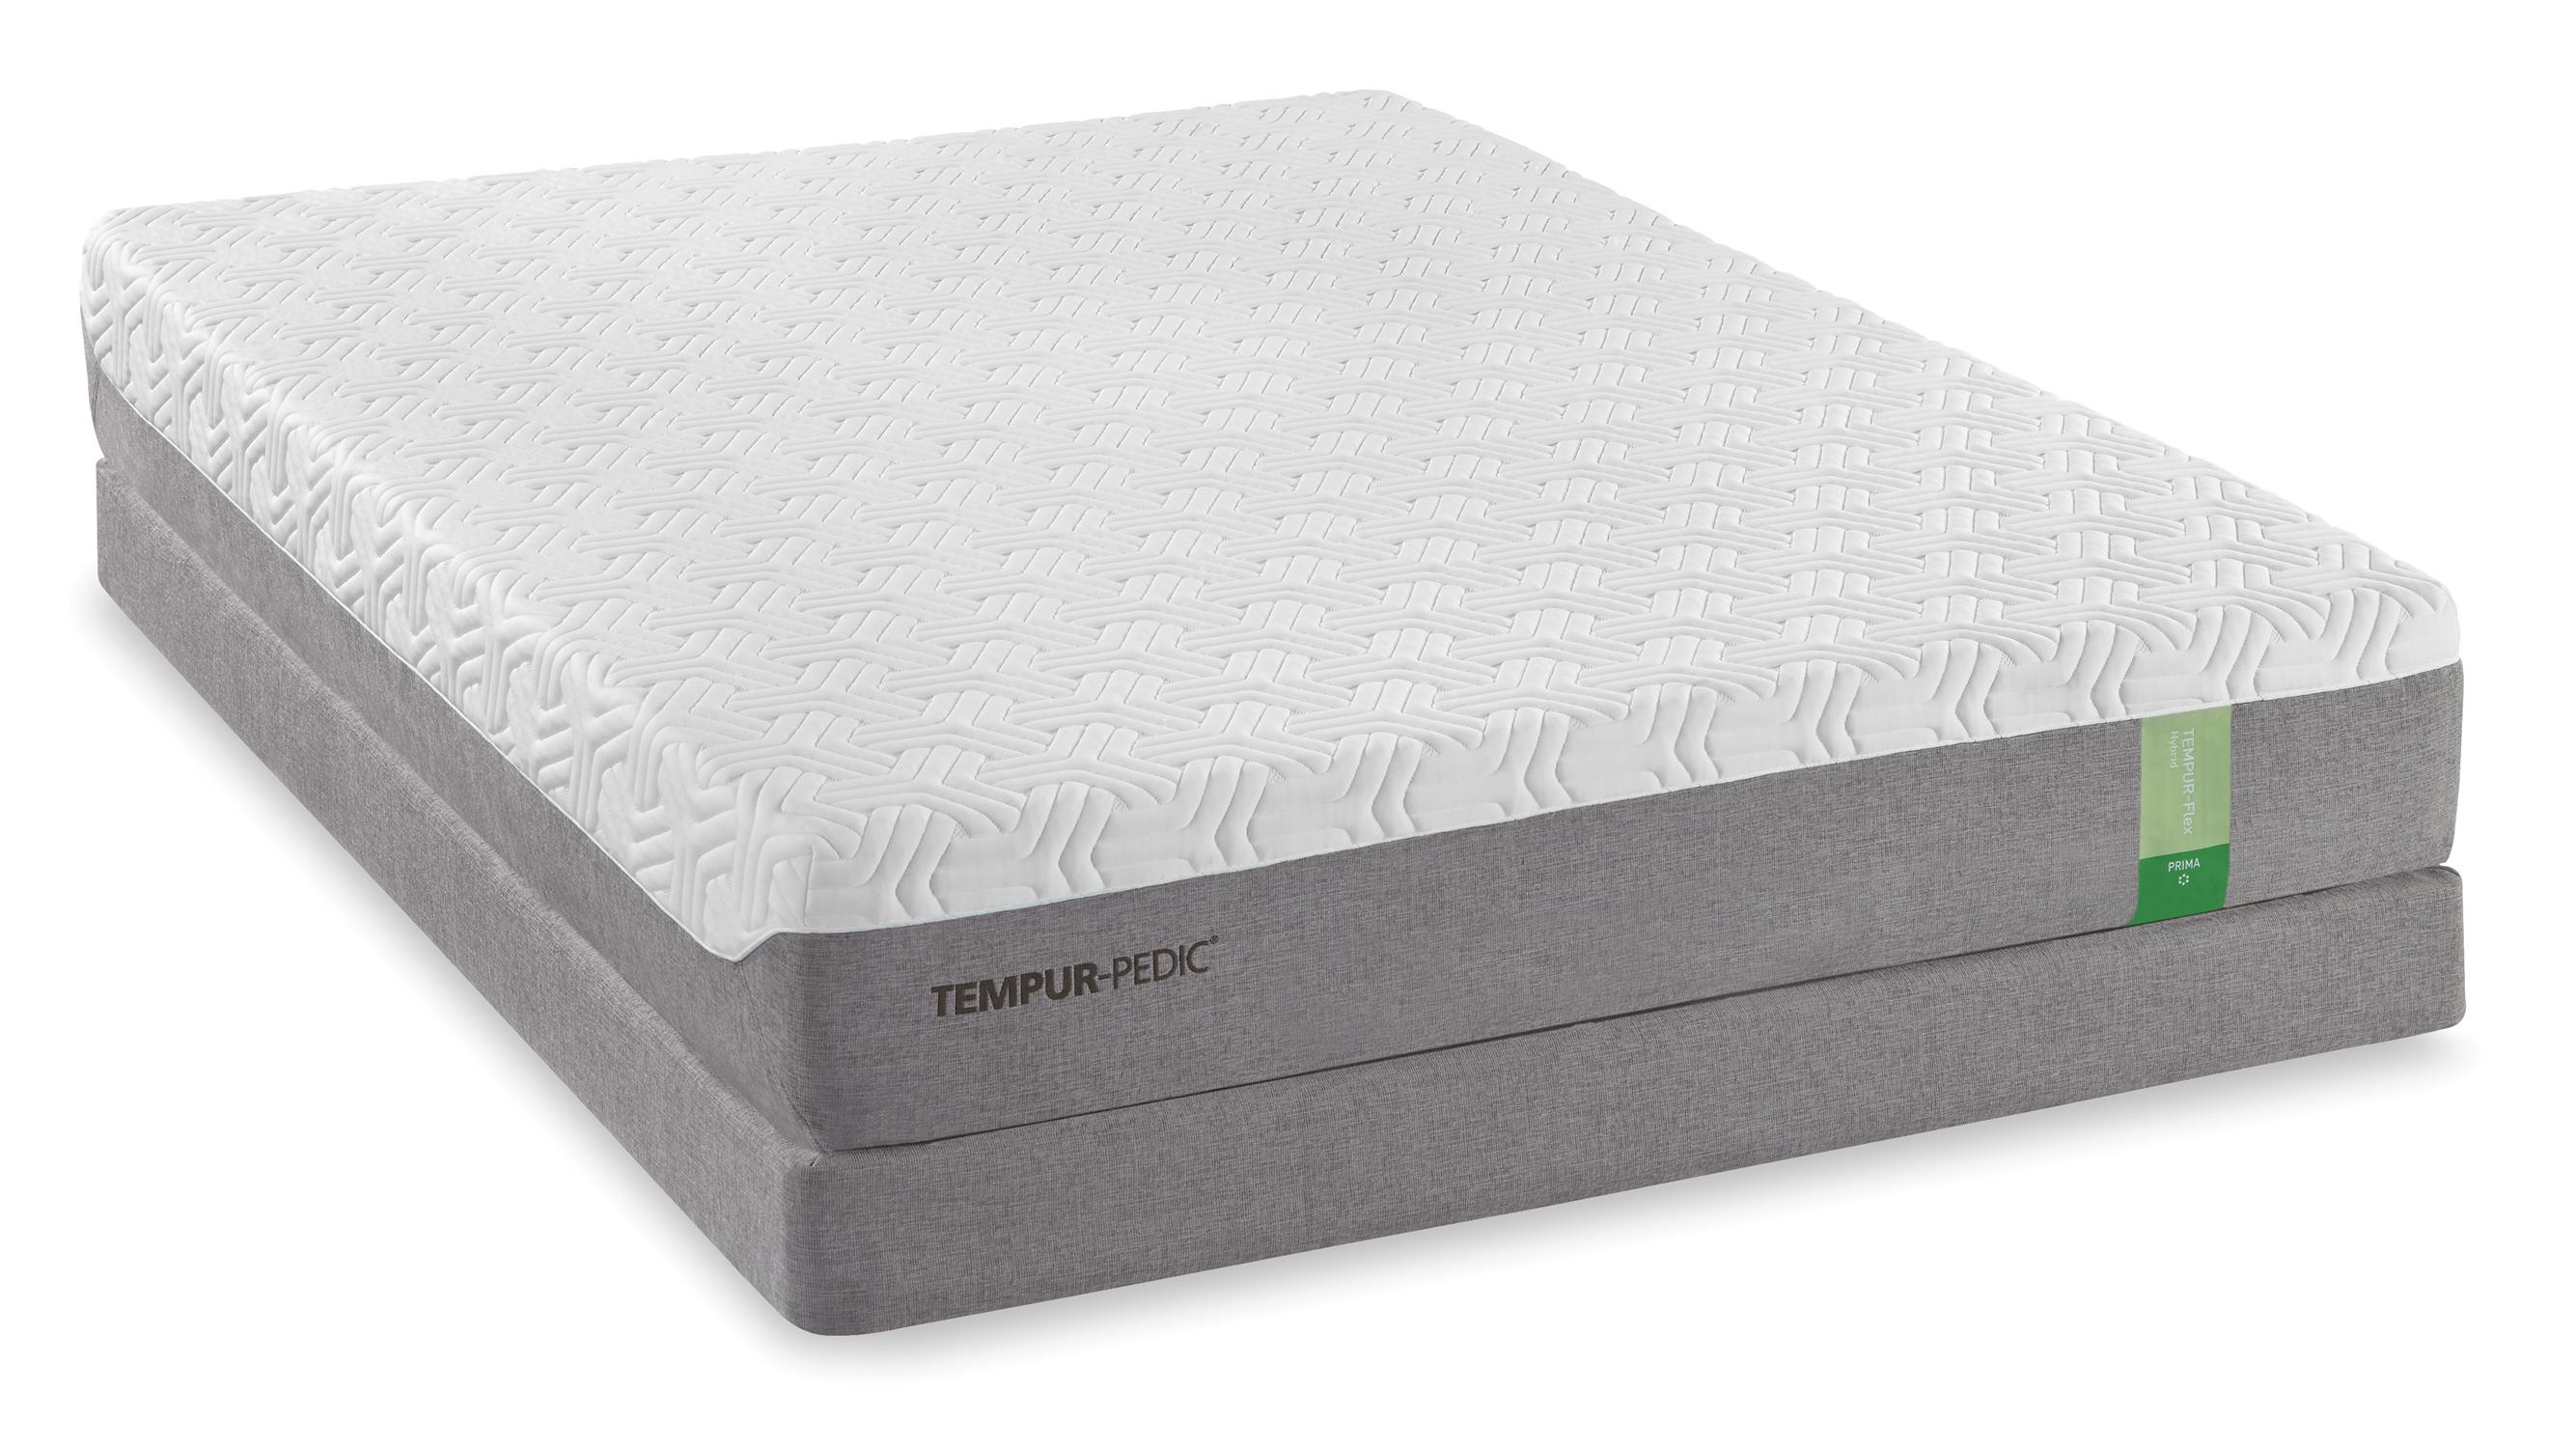 Tempur-Pedic® TEMPUR-Flex Prima King Medium Firm Mattress Set - Item Number: 10115270+2x21510120